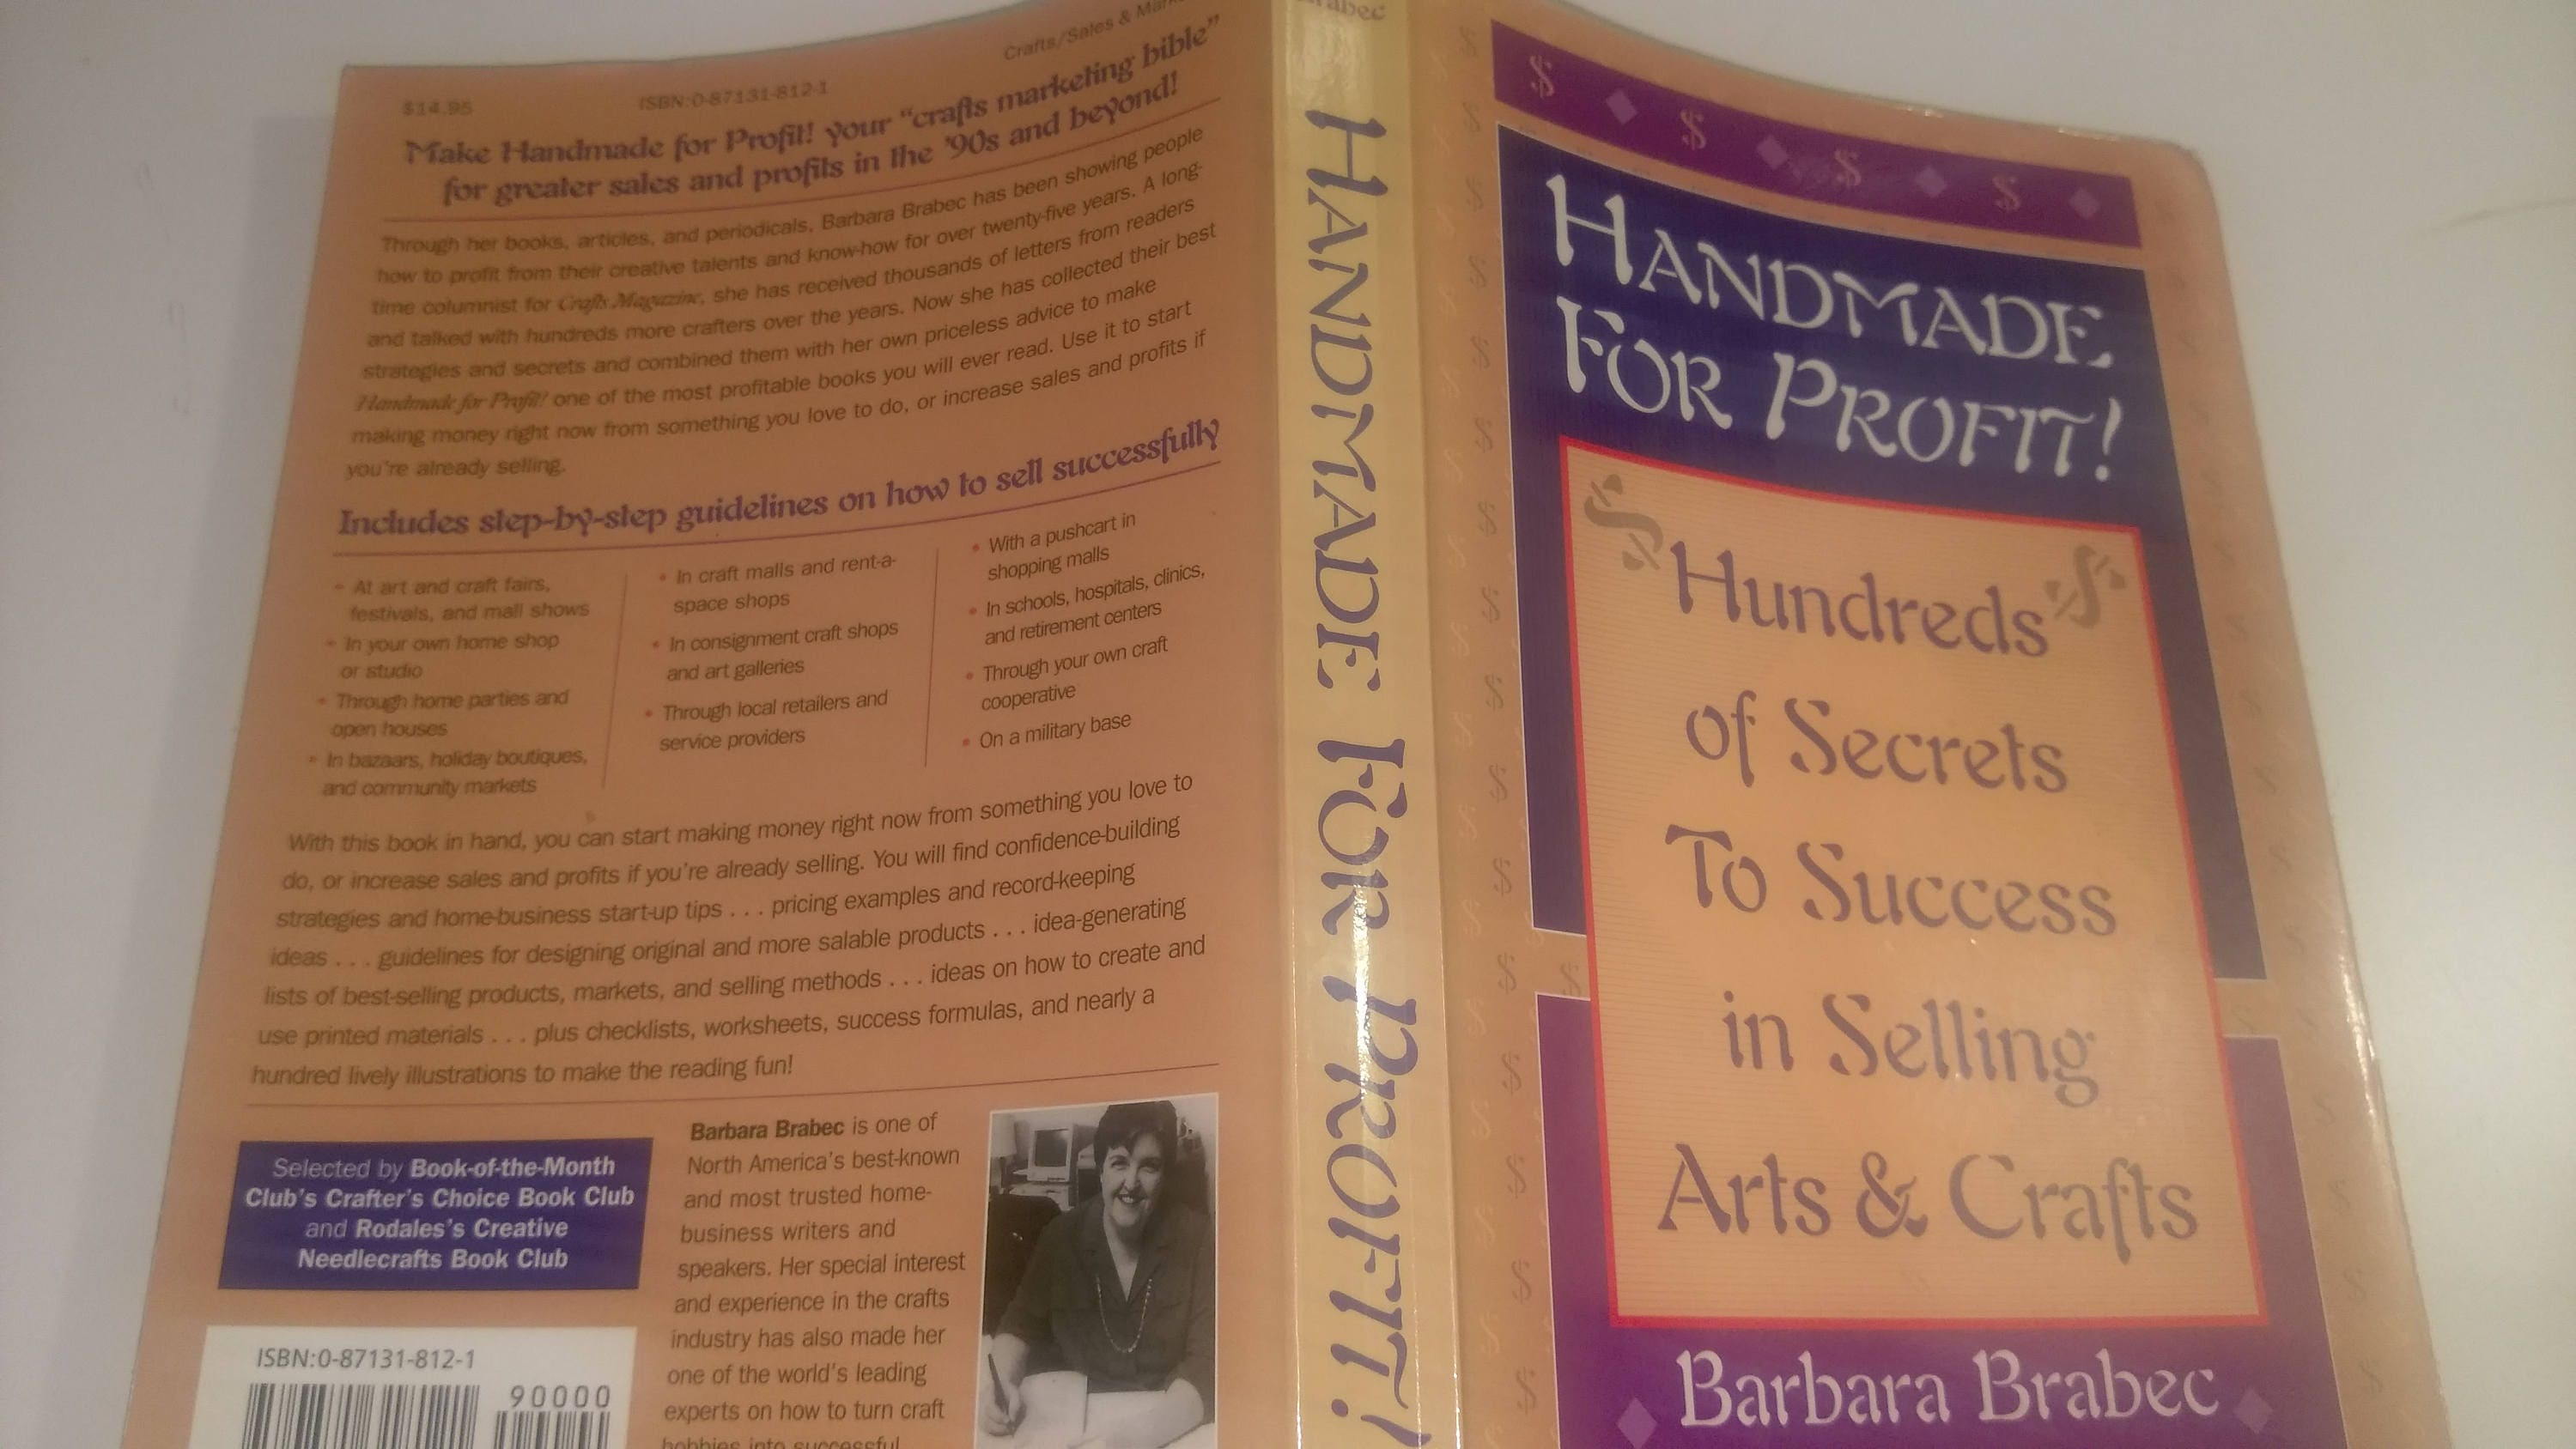 Handmade For Profit Book By Barbara Brabec 100s Of Secrets To Etsy